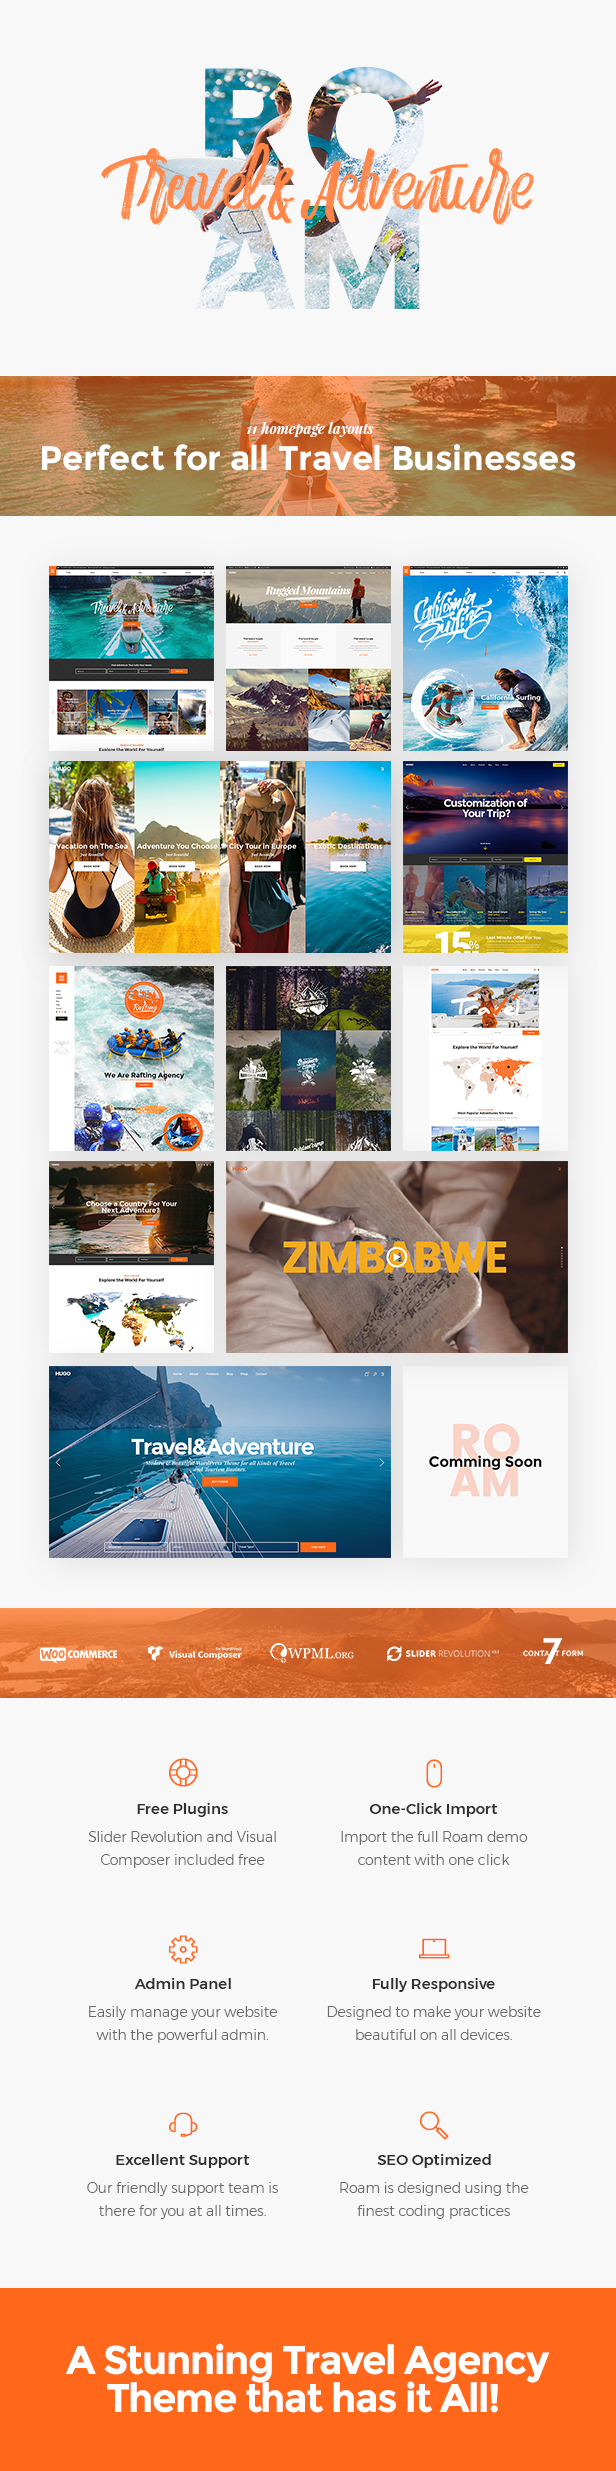 Roam - An Adventurous Travel and Tourism Theme